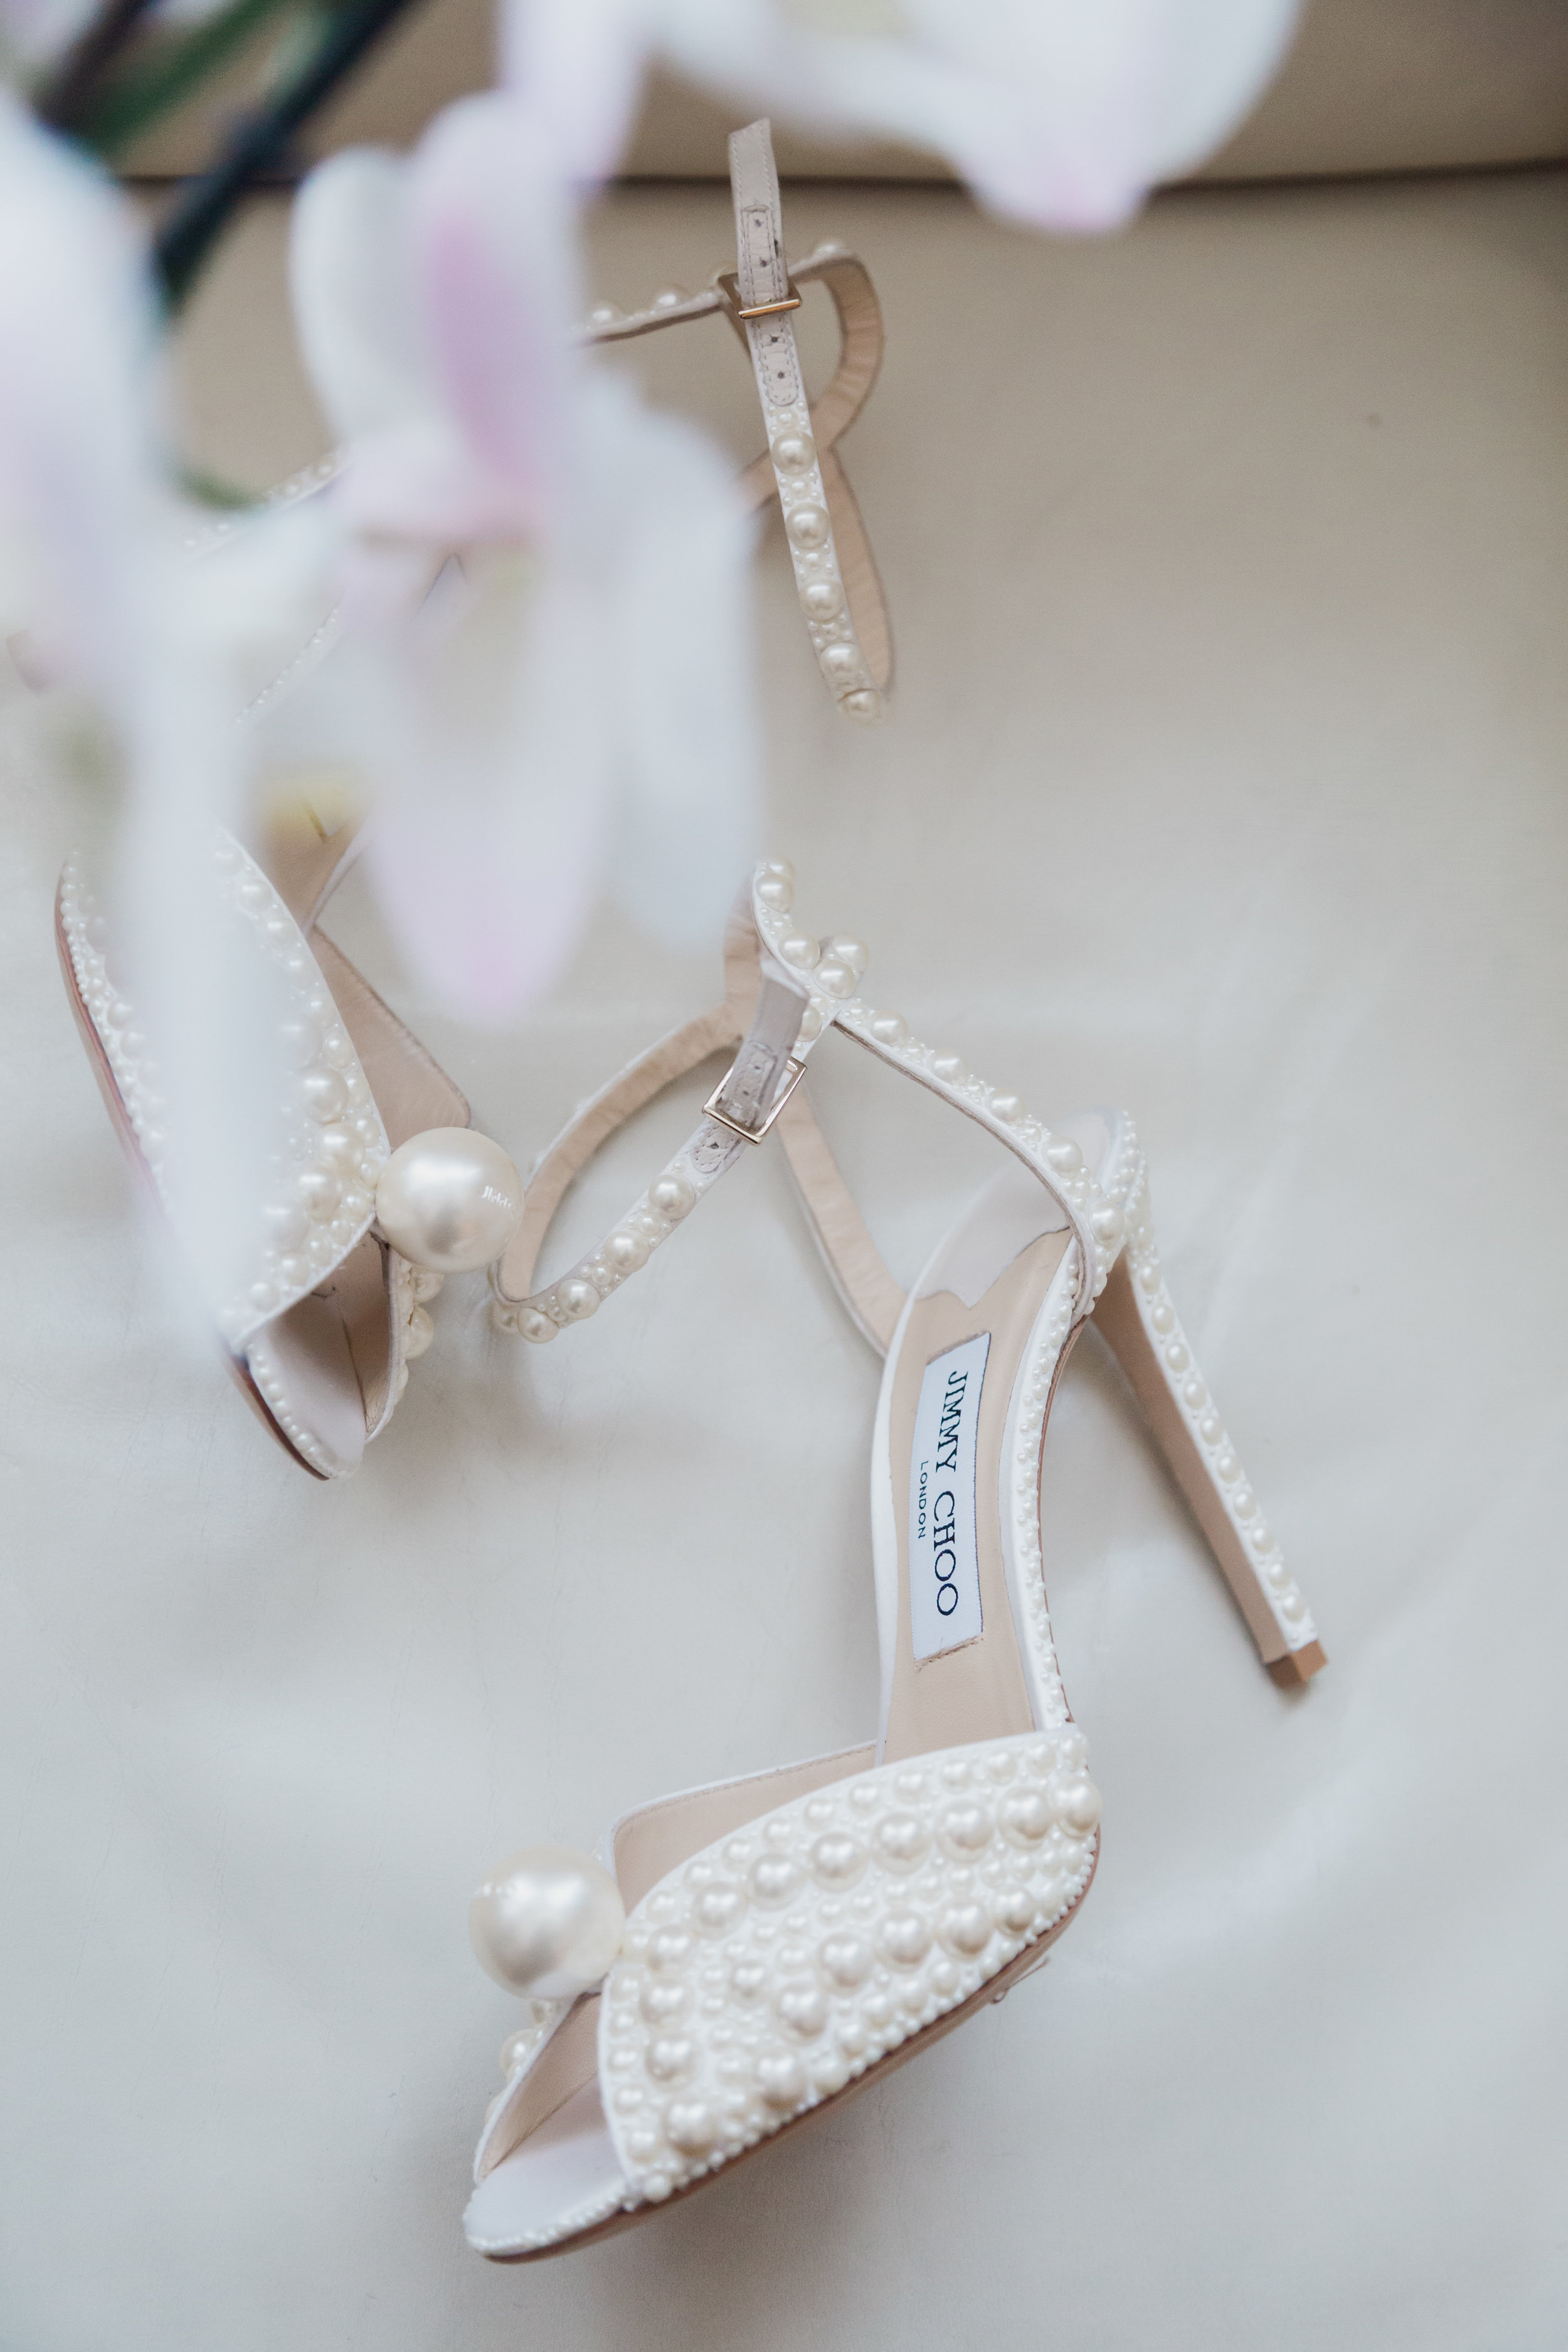 Pearl and White Jimmy Choo Bridal Shoes. Wedding Planning and Event Design by Andrea Eppolito www.andreaeppolitoevents.com. Photos by Adam Frazier.